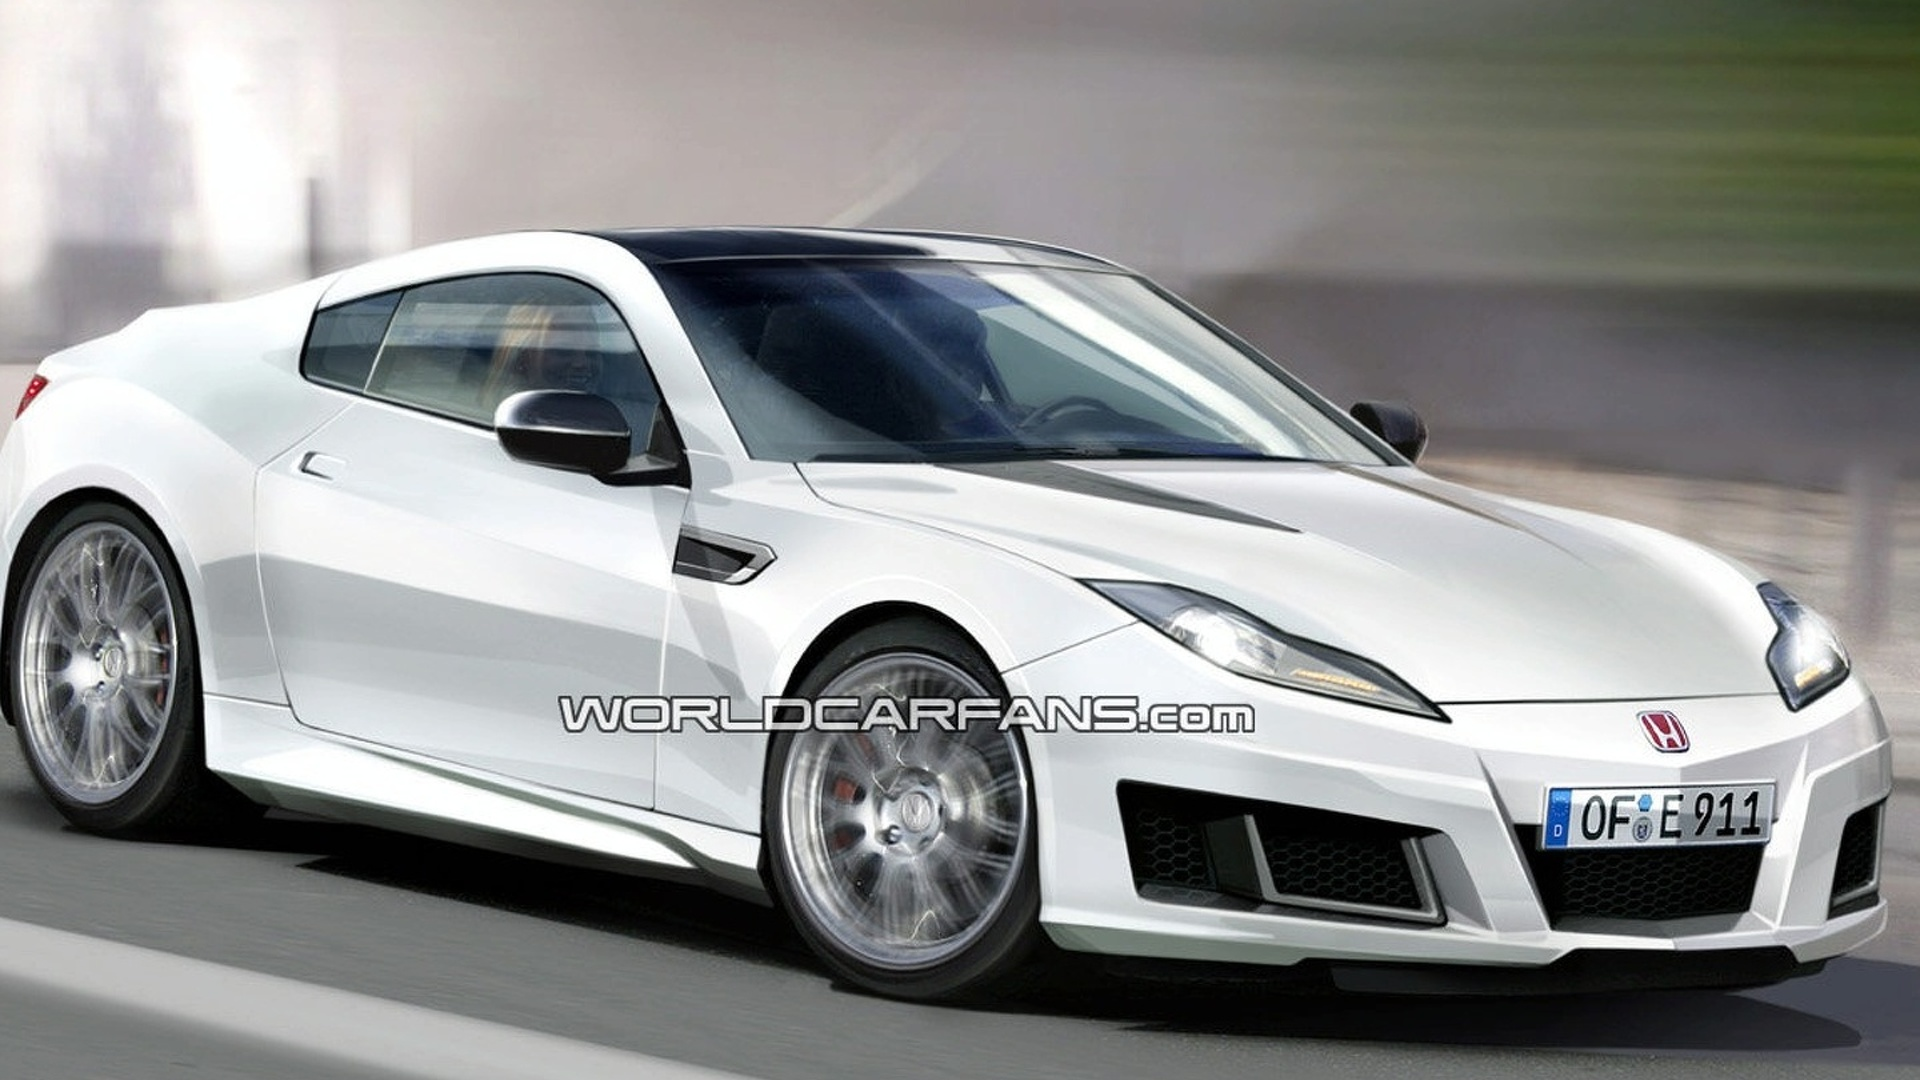 the development of new product for honda 2013 honda cr-z turbo & 2006 honda s2000 heads up for anyone interested in the hks legamax exhaust, we are getting our first batch in 4-ish weeks still have some unclaimed in the first batch so now's a perfect time to put that pre-order in.